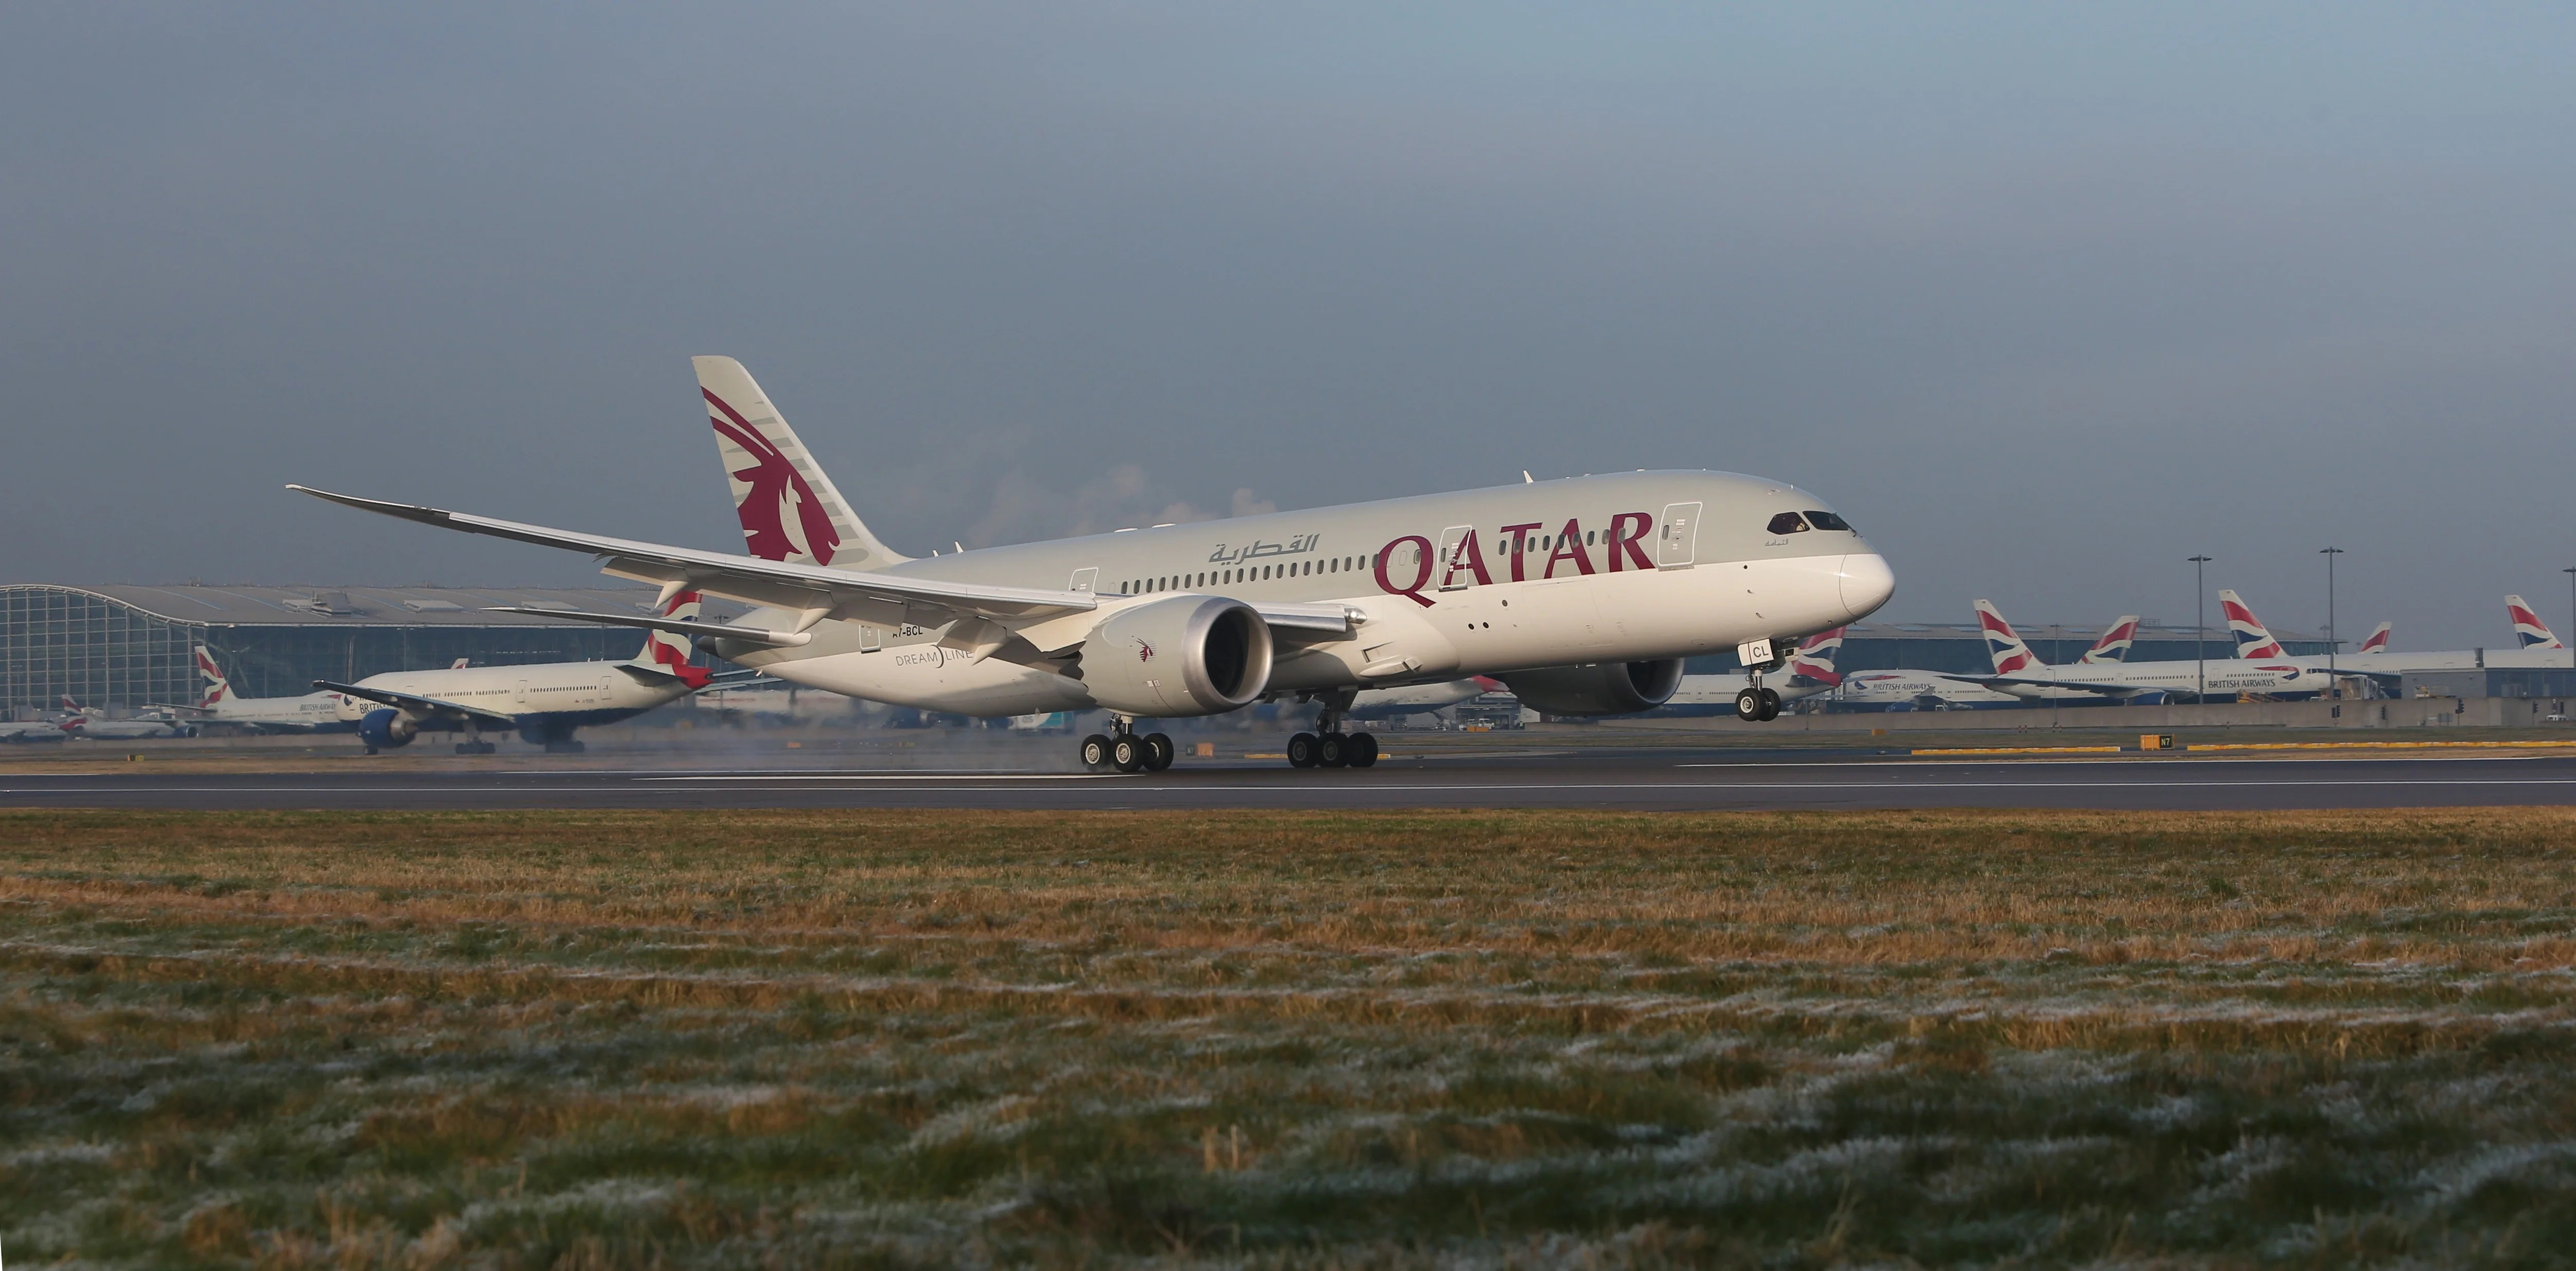 Qatar Airways delays 787-9 delivery due to new Qsuite design